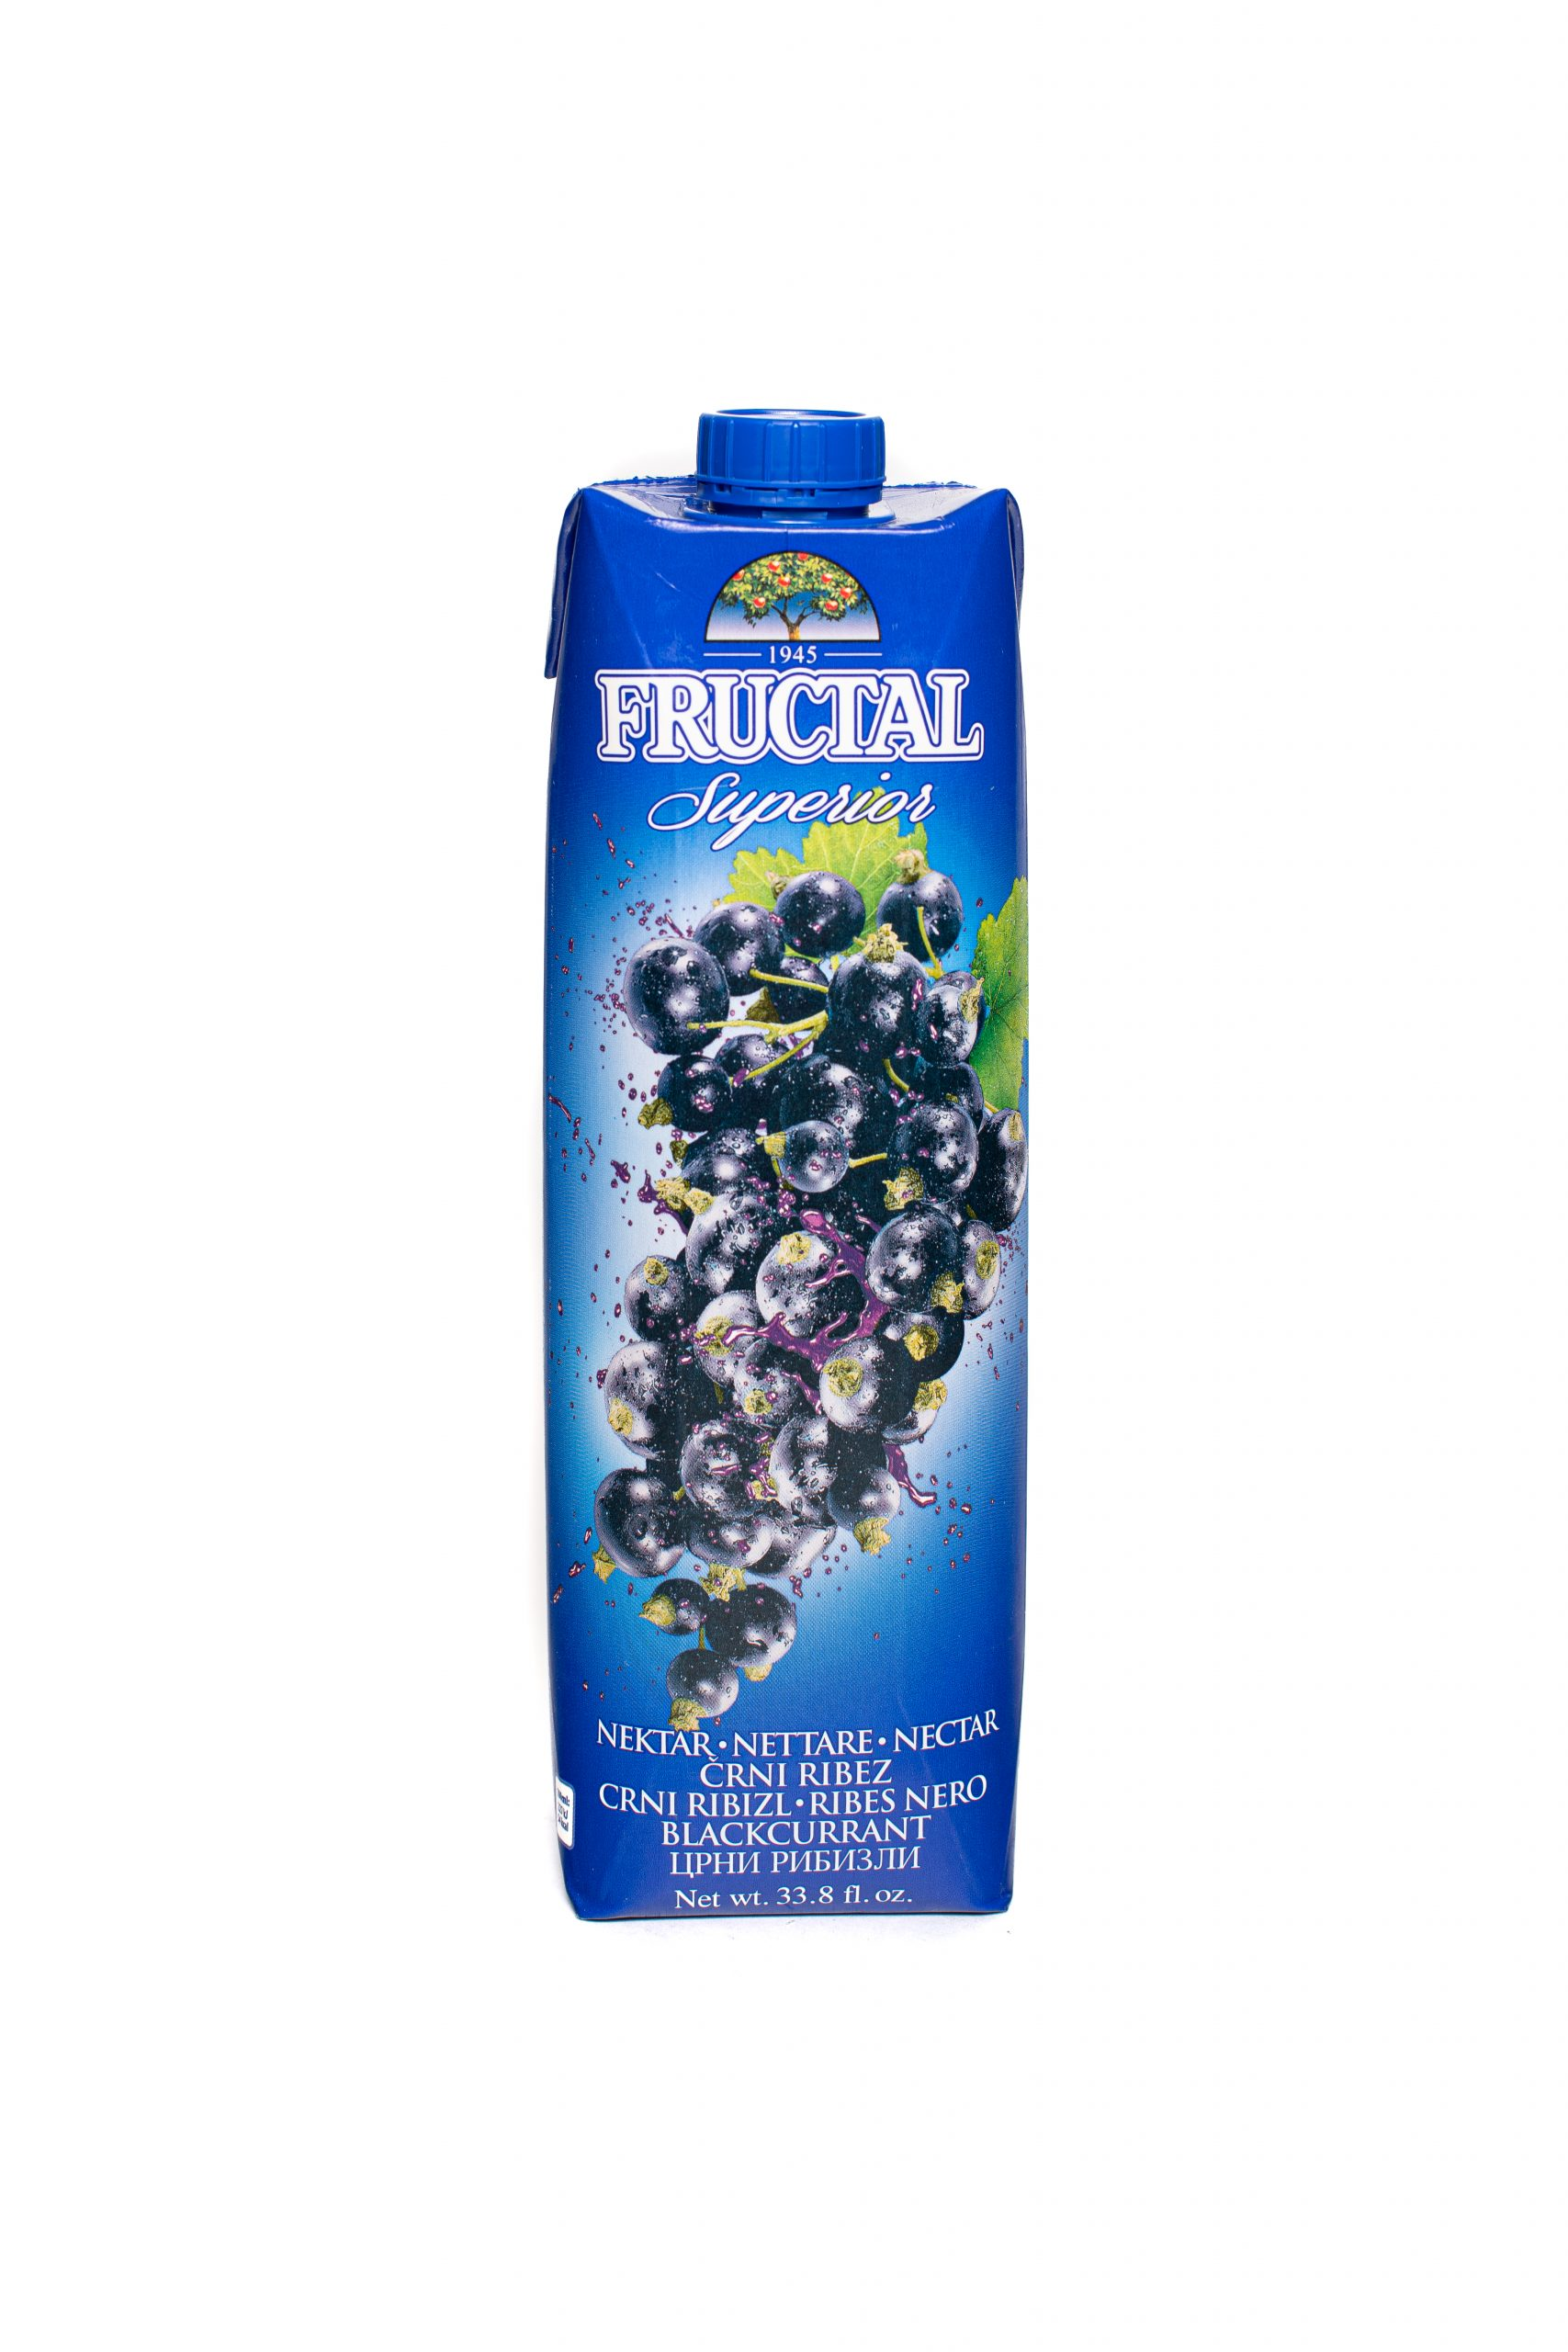 Fructal Superior | 1L | Black Current